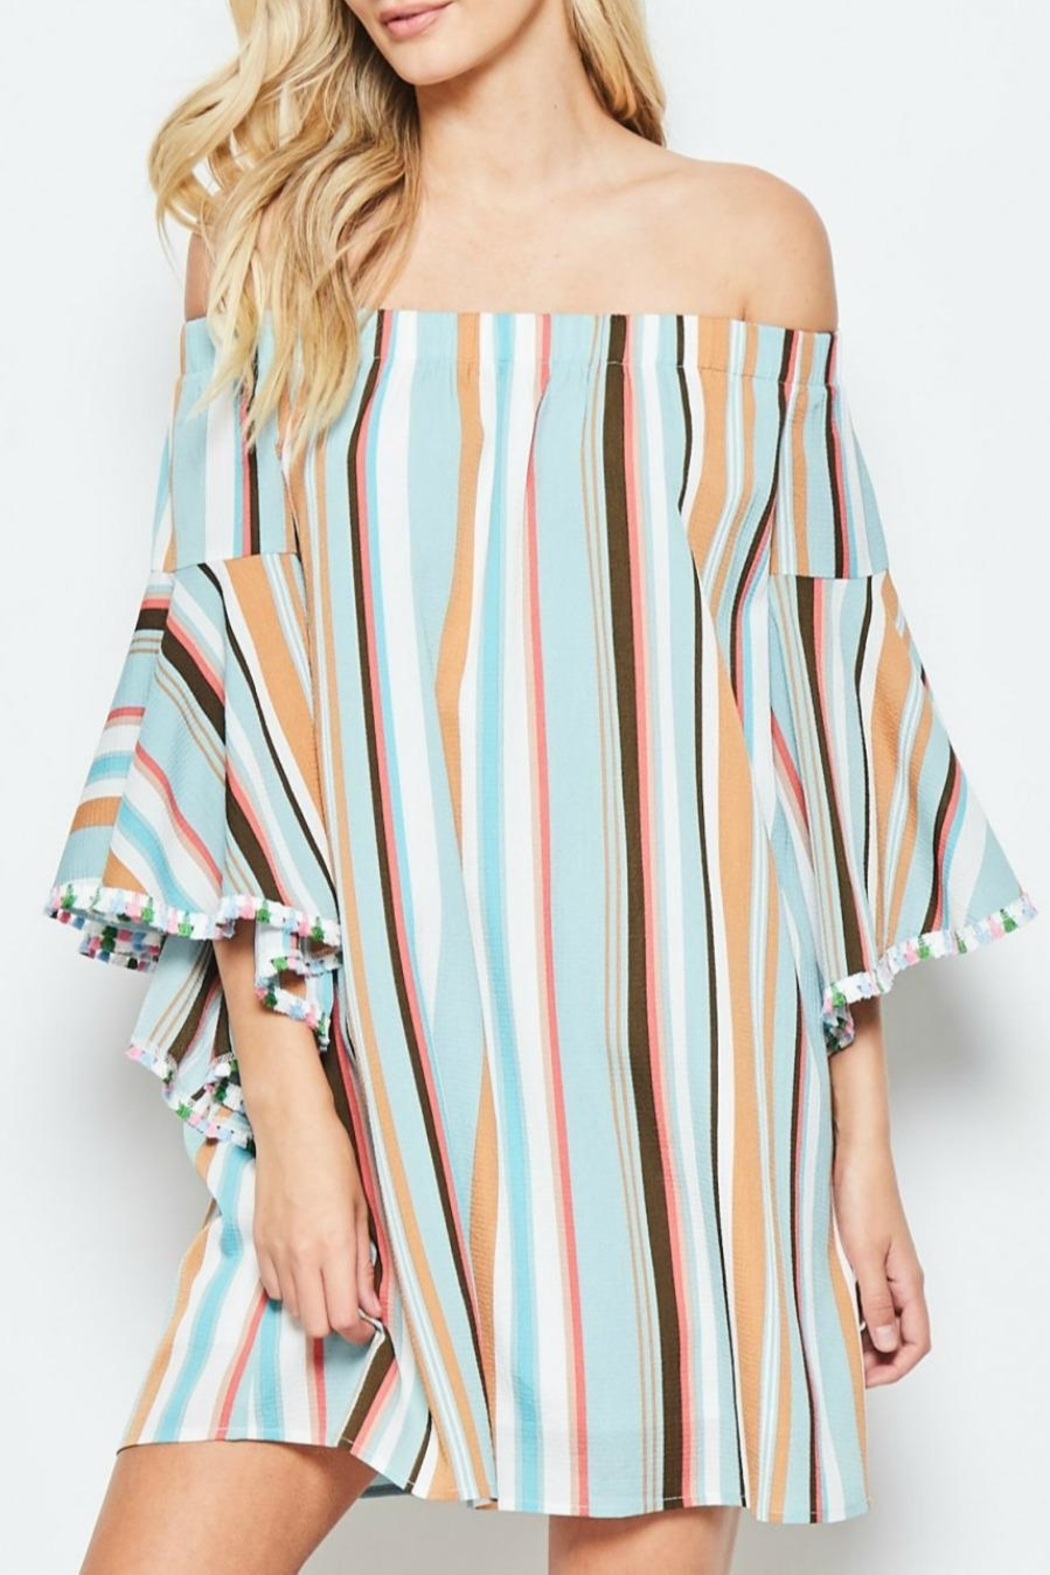 Andree by Unit Vacation Off-The-Shoulder Dress - Main Image